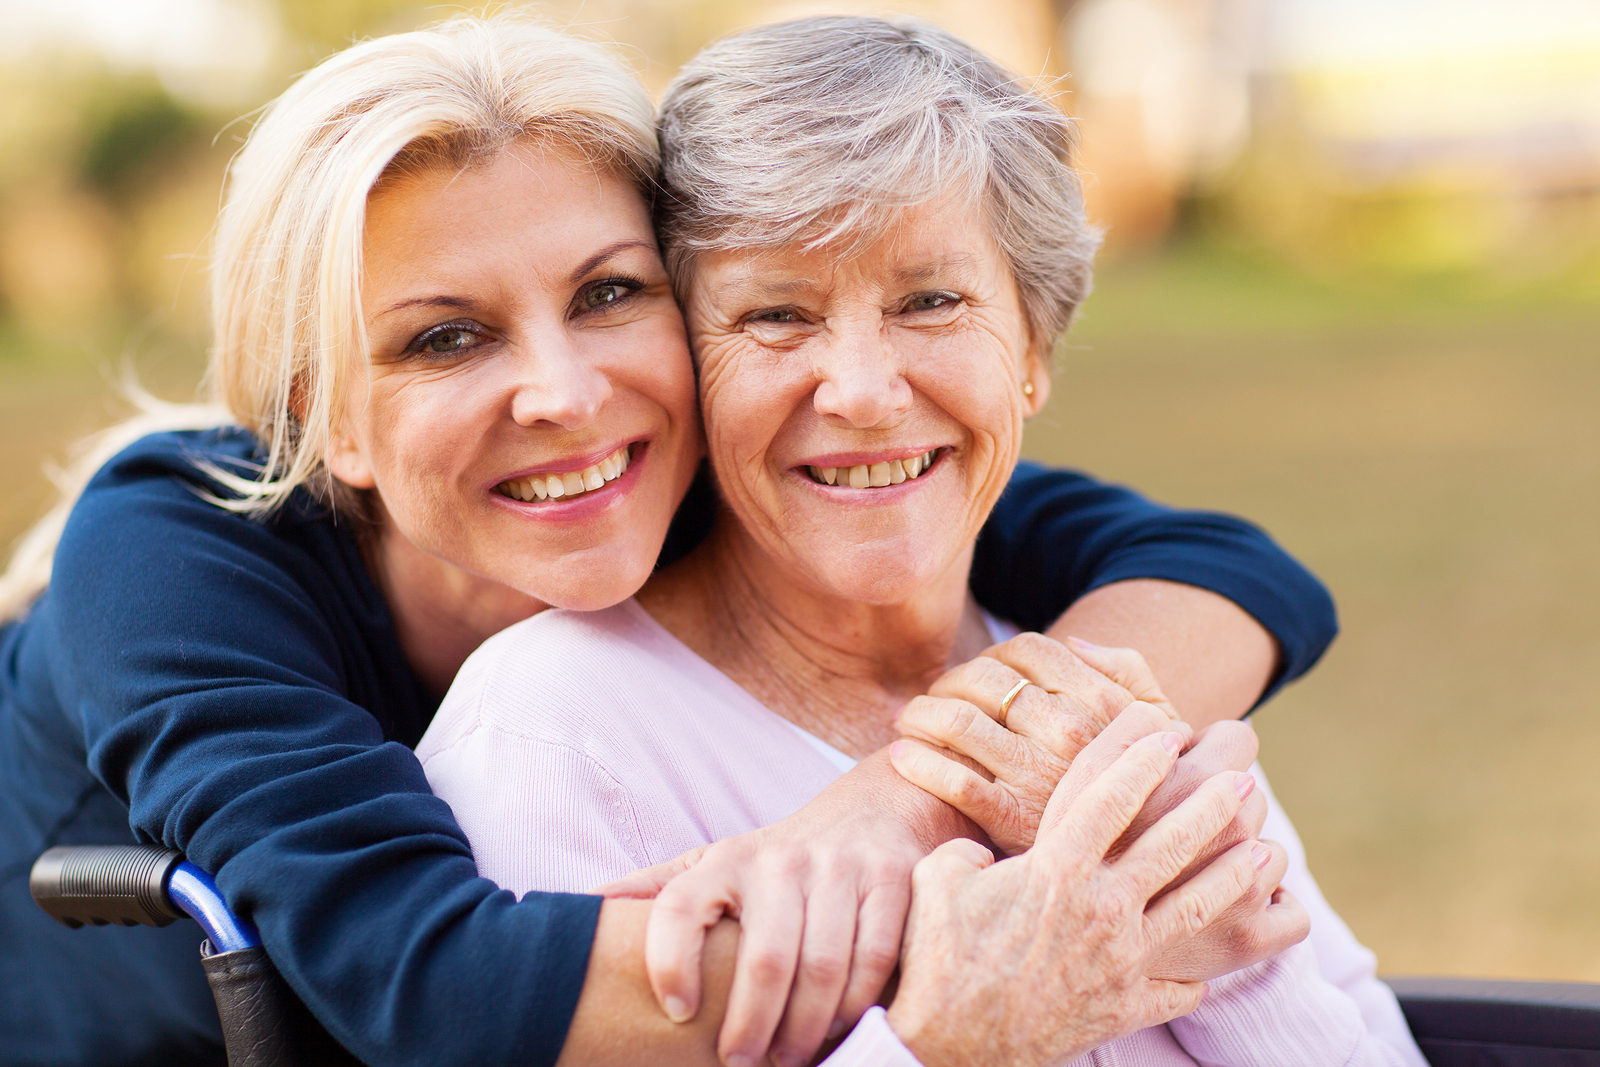 Caregiver Sandy Springs GA - How Do You Balance Your Life With Your Mom's Care Needs?